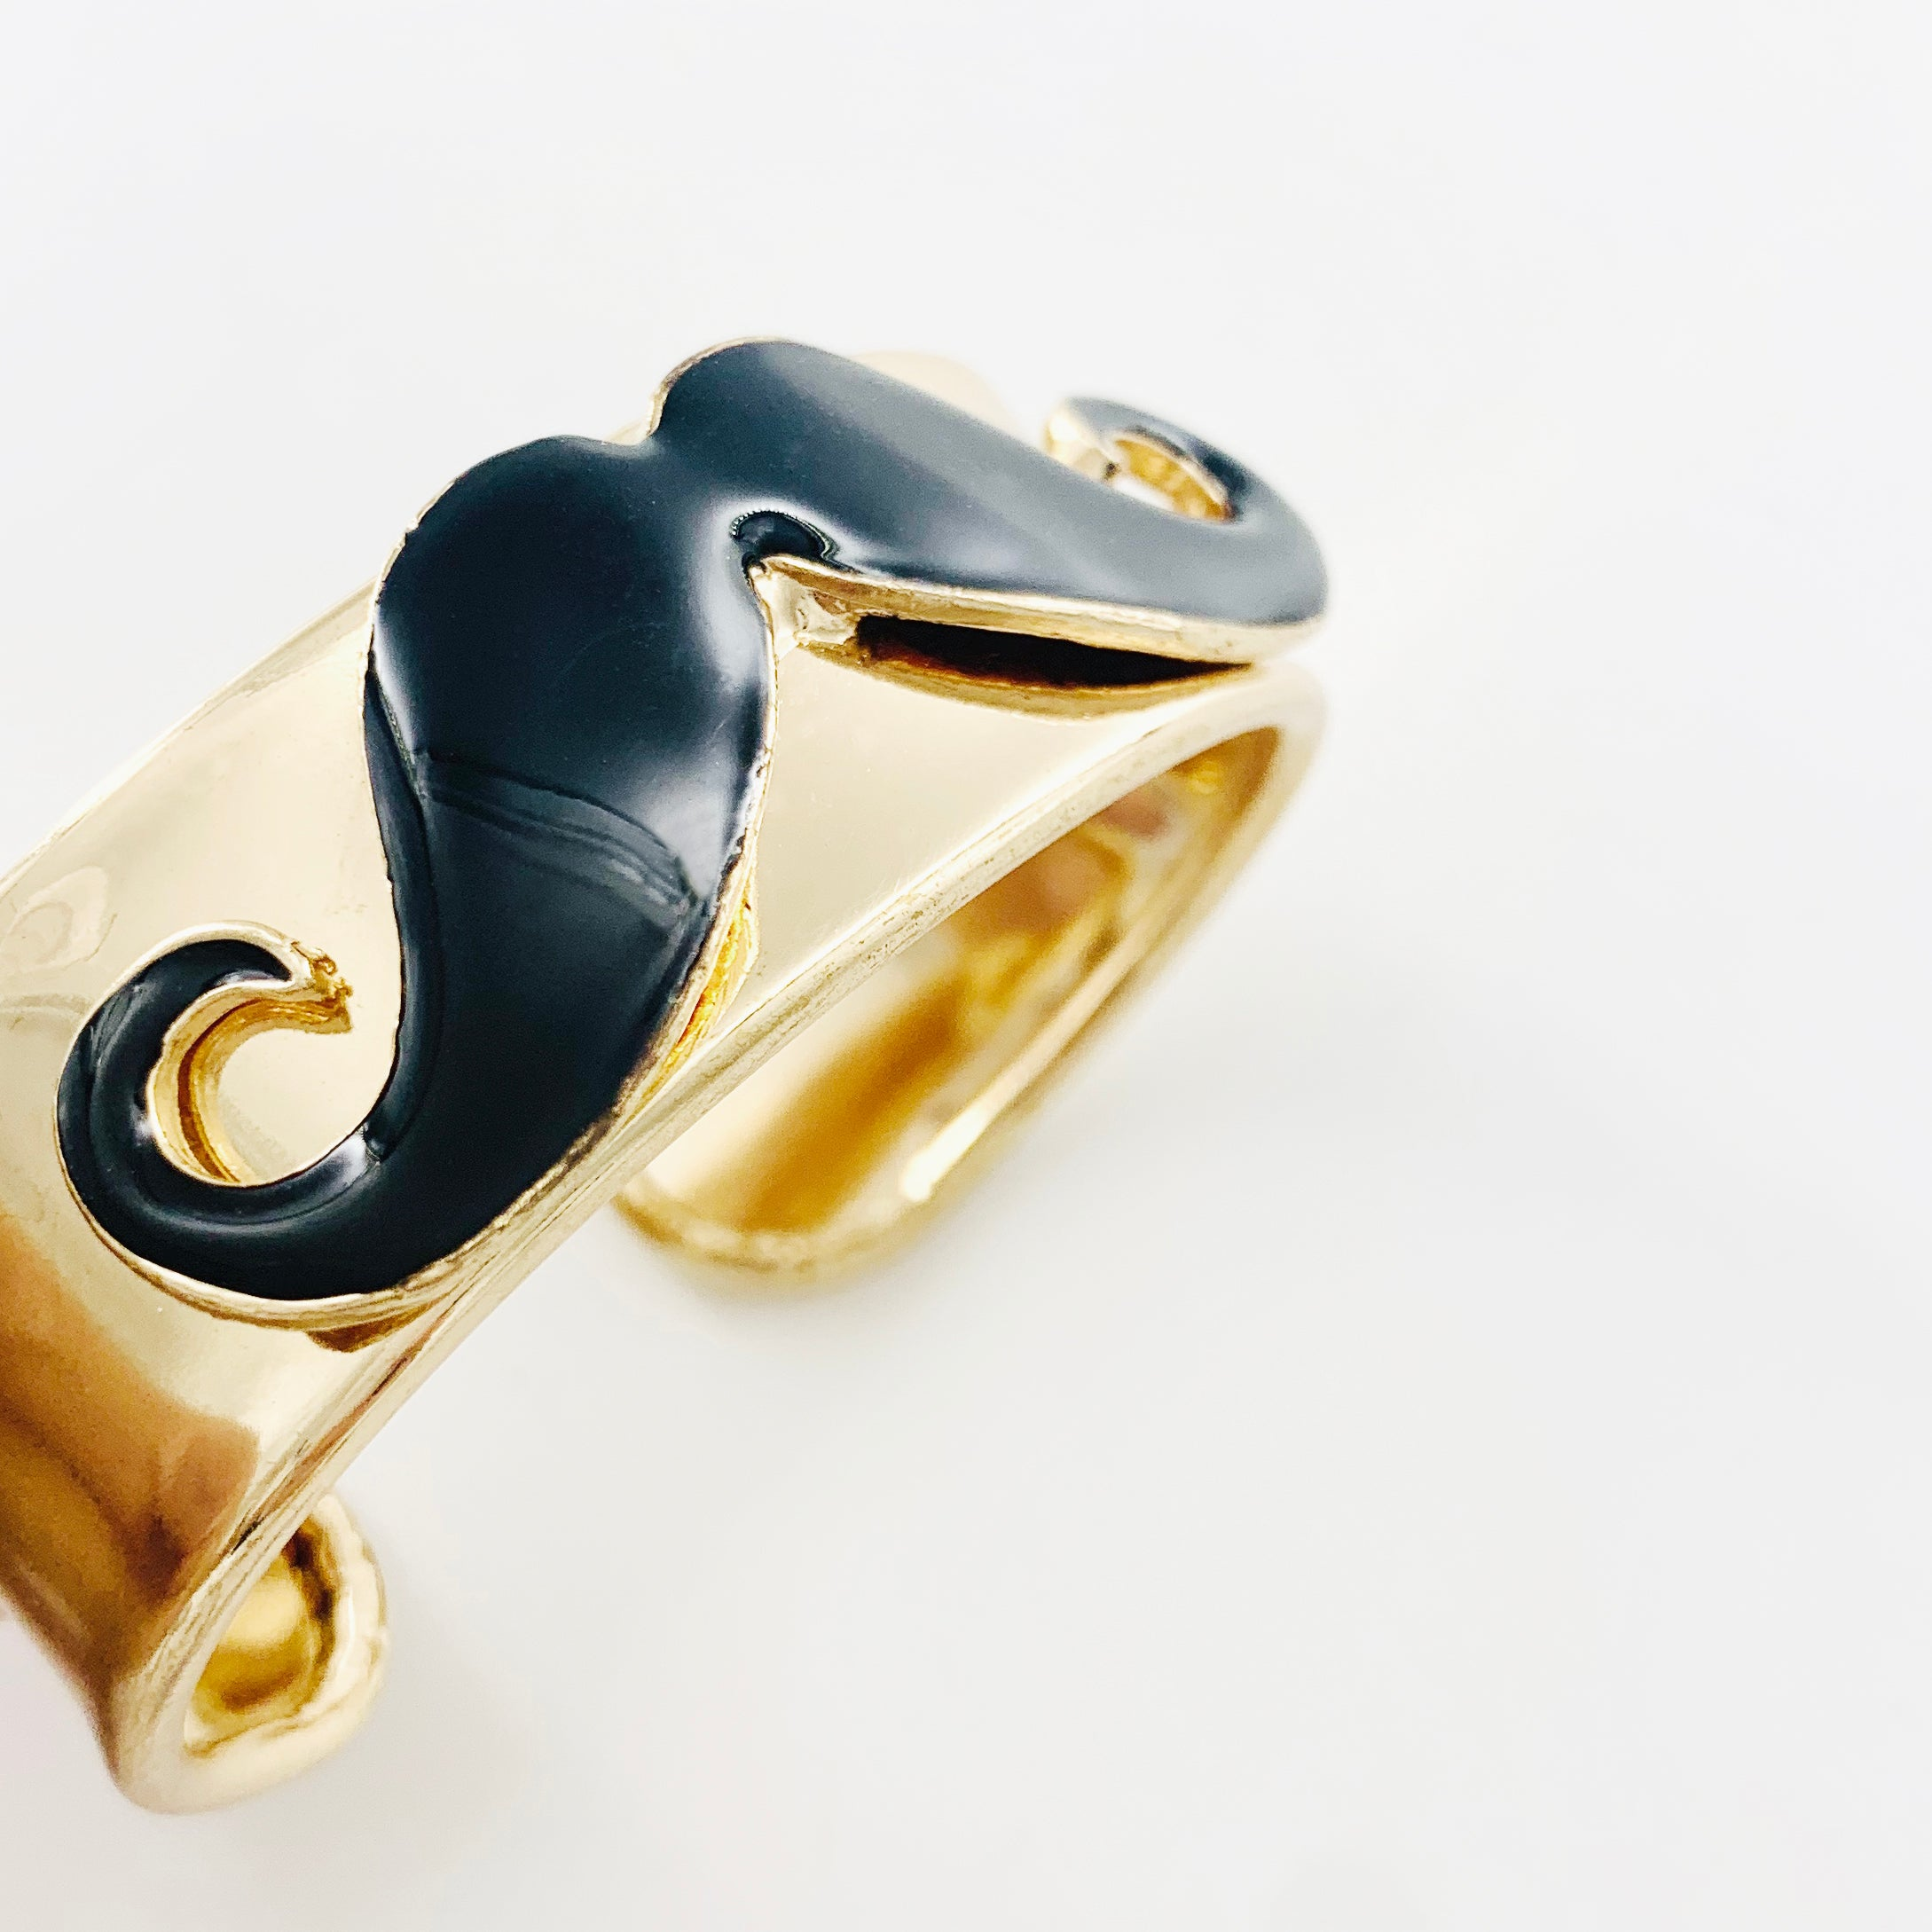 Gold and black enamel printed mustache cuff